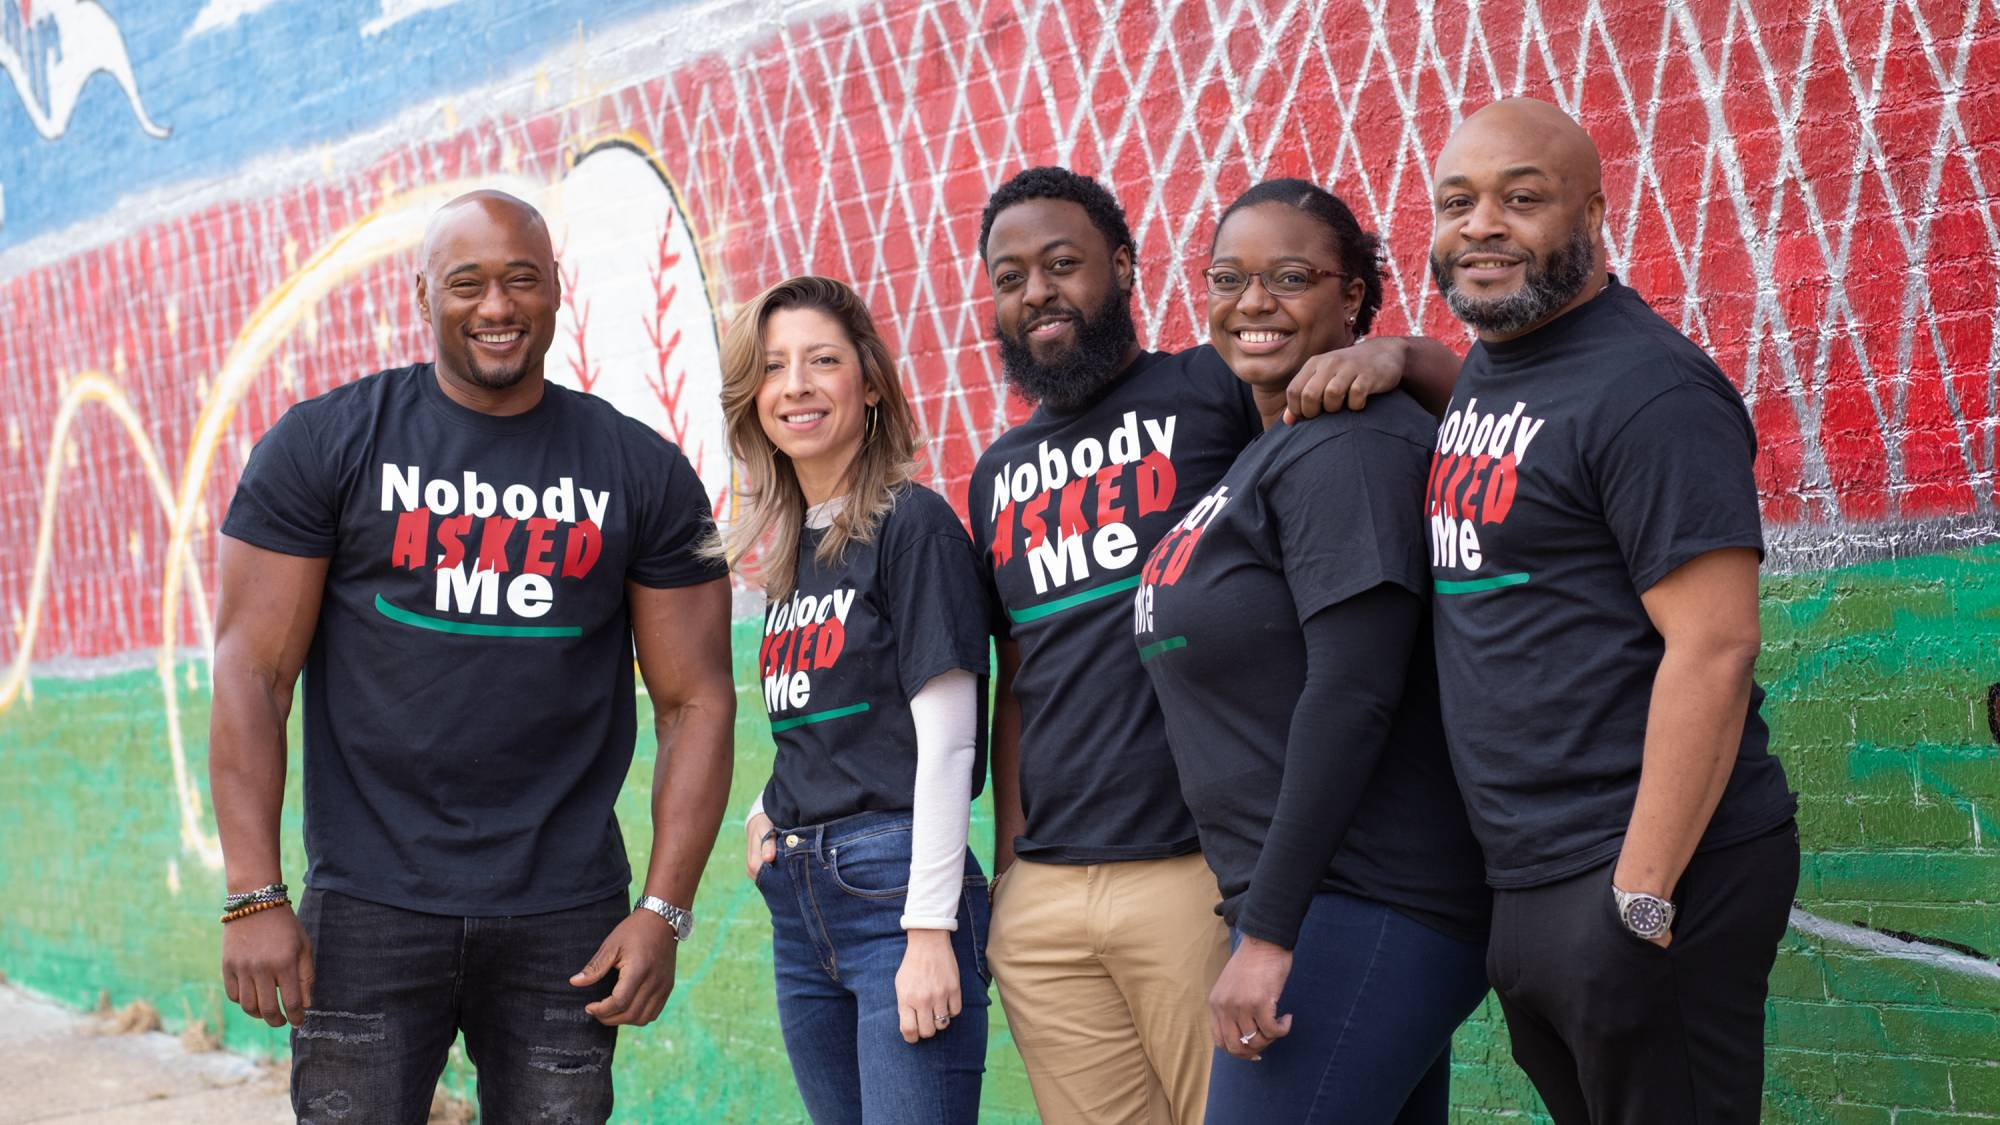 Nobody Asked Me research team (from left) Richard Lofton, Rebecca Gamez, Dantavious Hick, Zyrashae Smith, and Larry Simmons